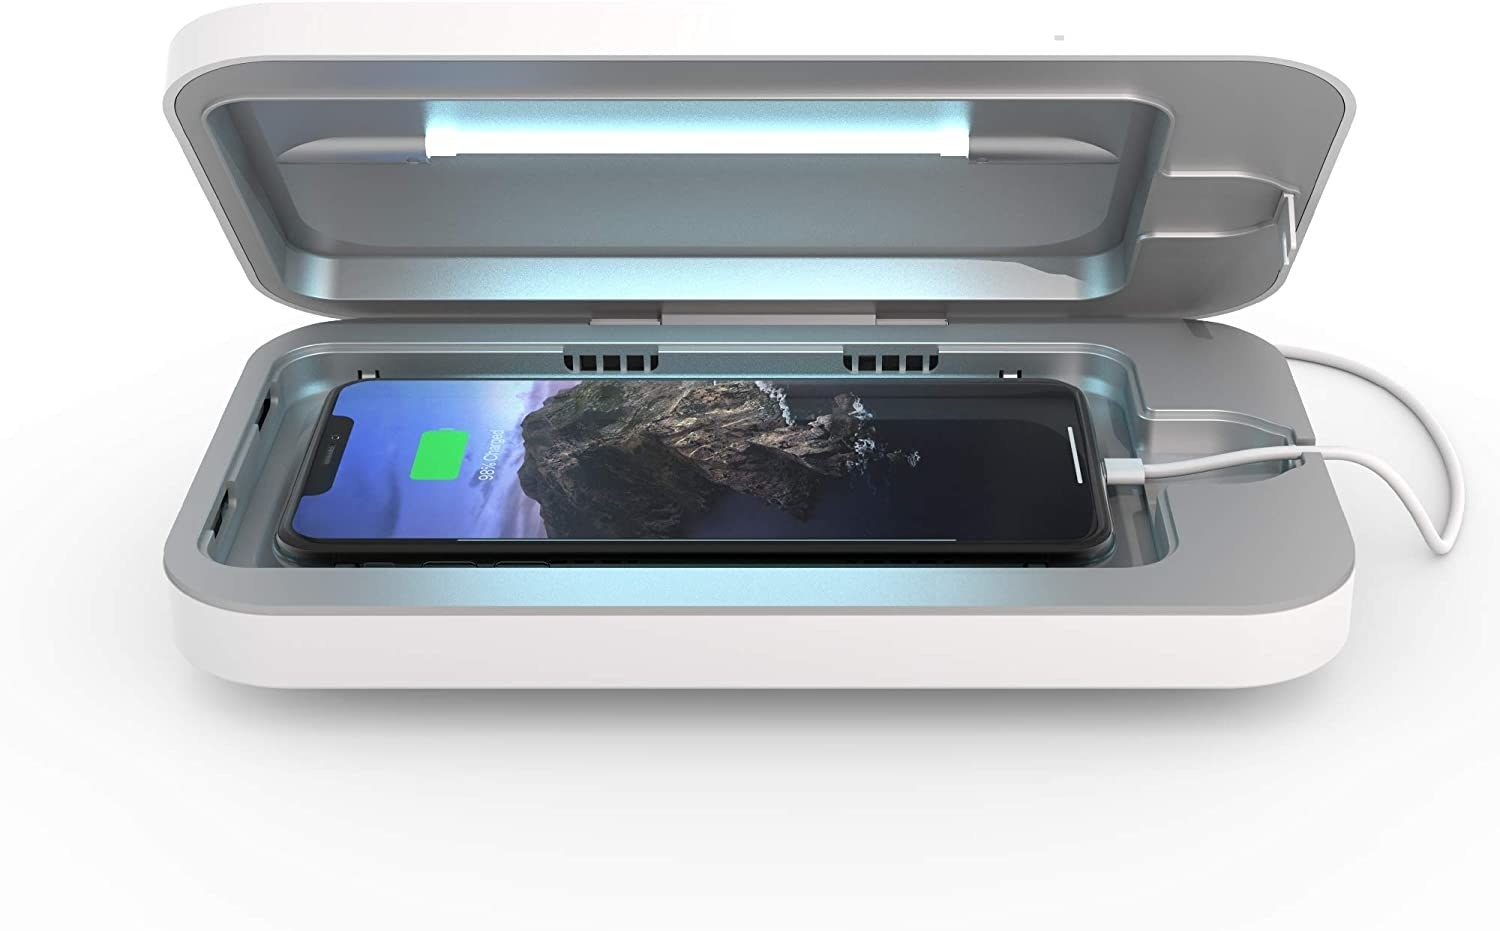 a phone in the sanitizer box